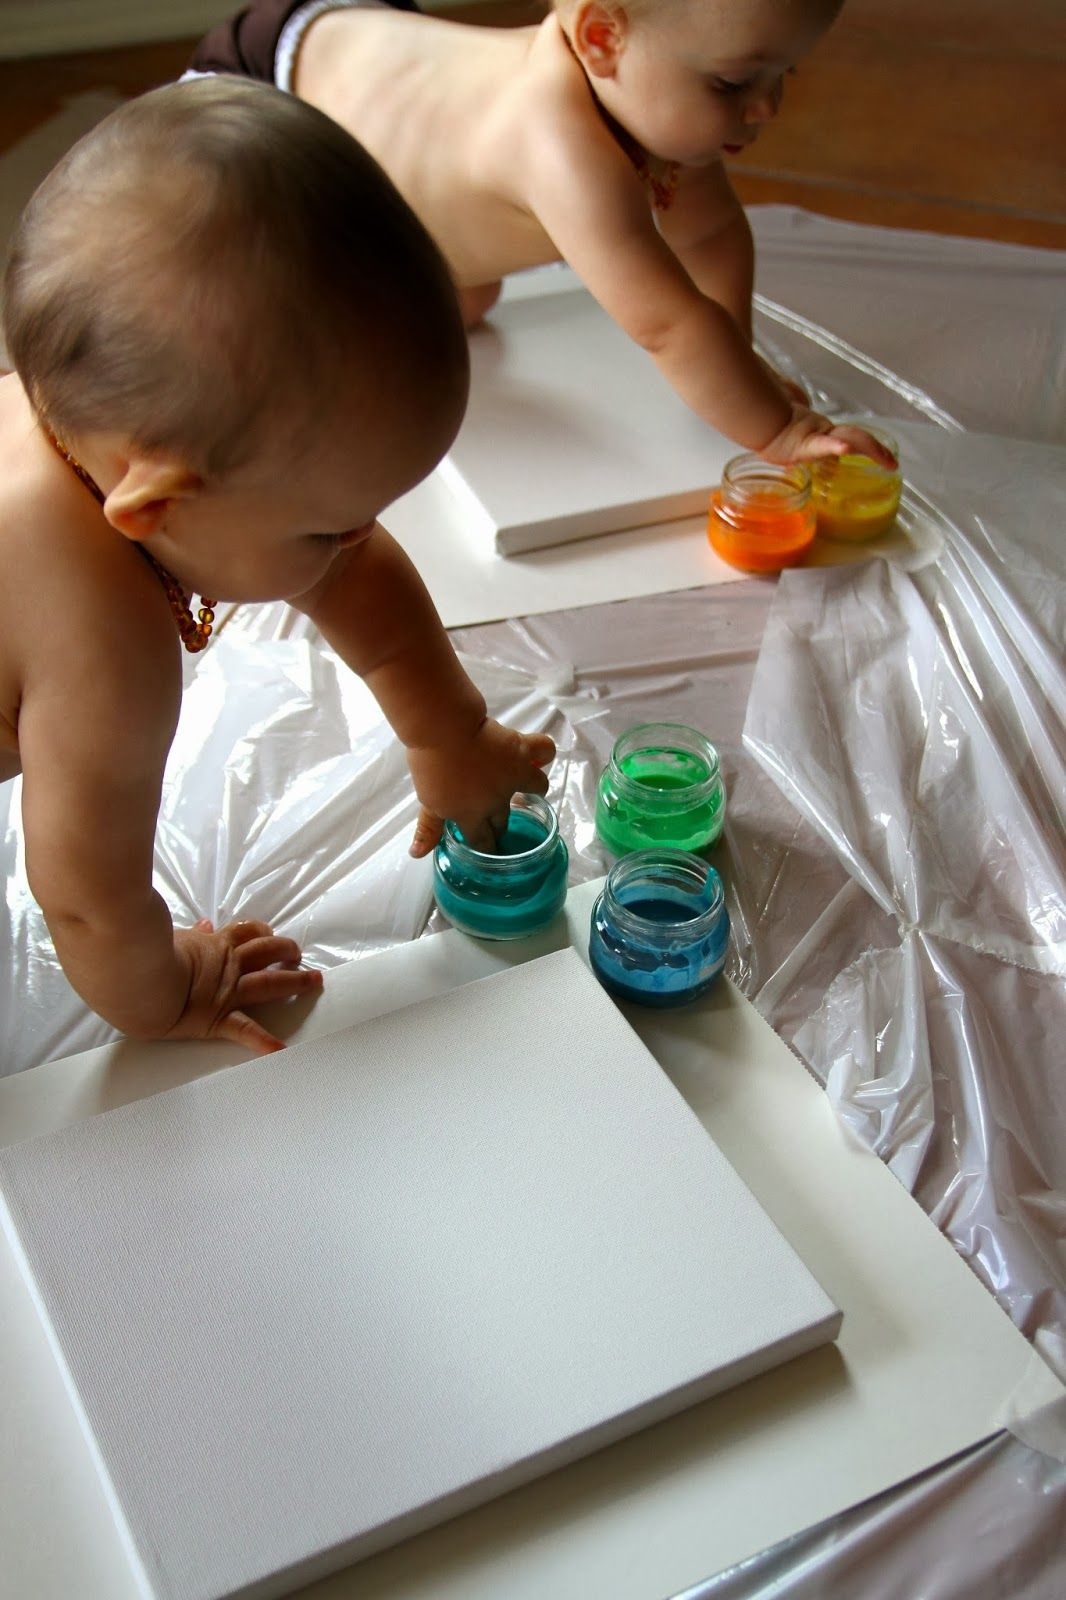 Baby safe paint for crafts - 17 Best Images About Baby Ideas On Pinterest Gold Dipped Mom Hacks And Homemade Finger Paints